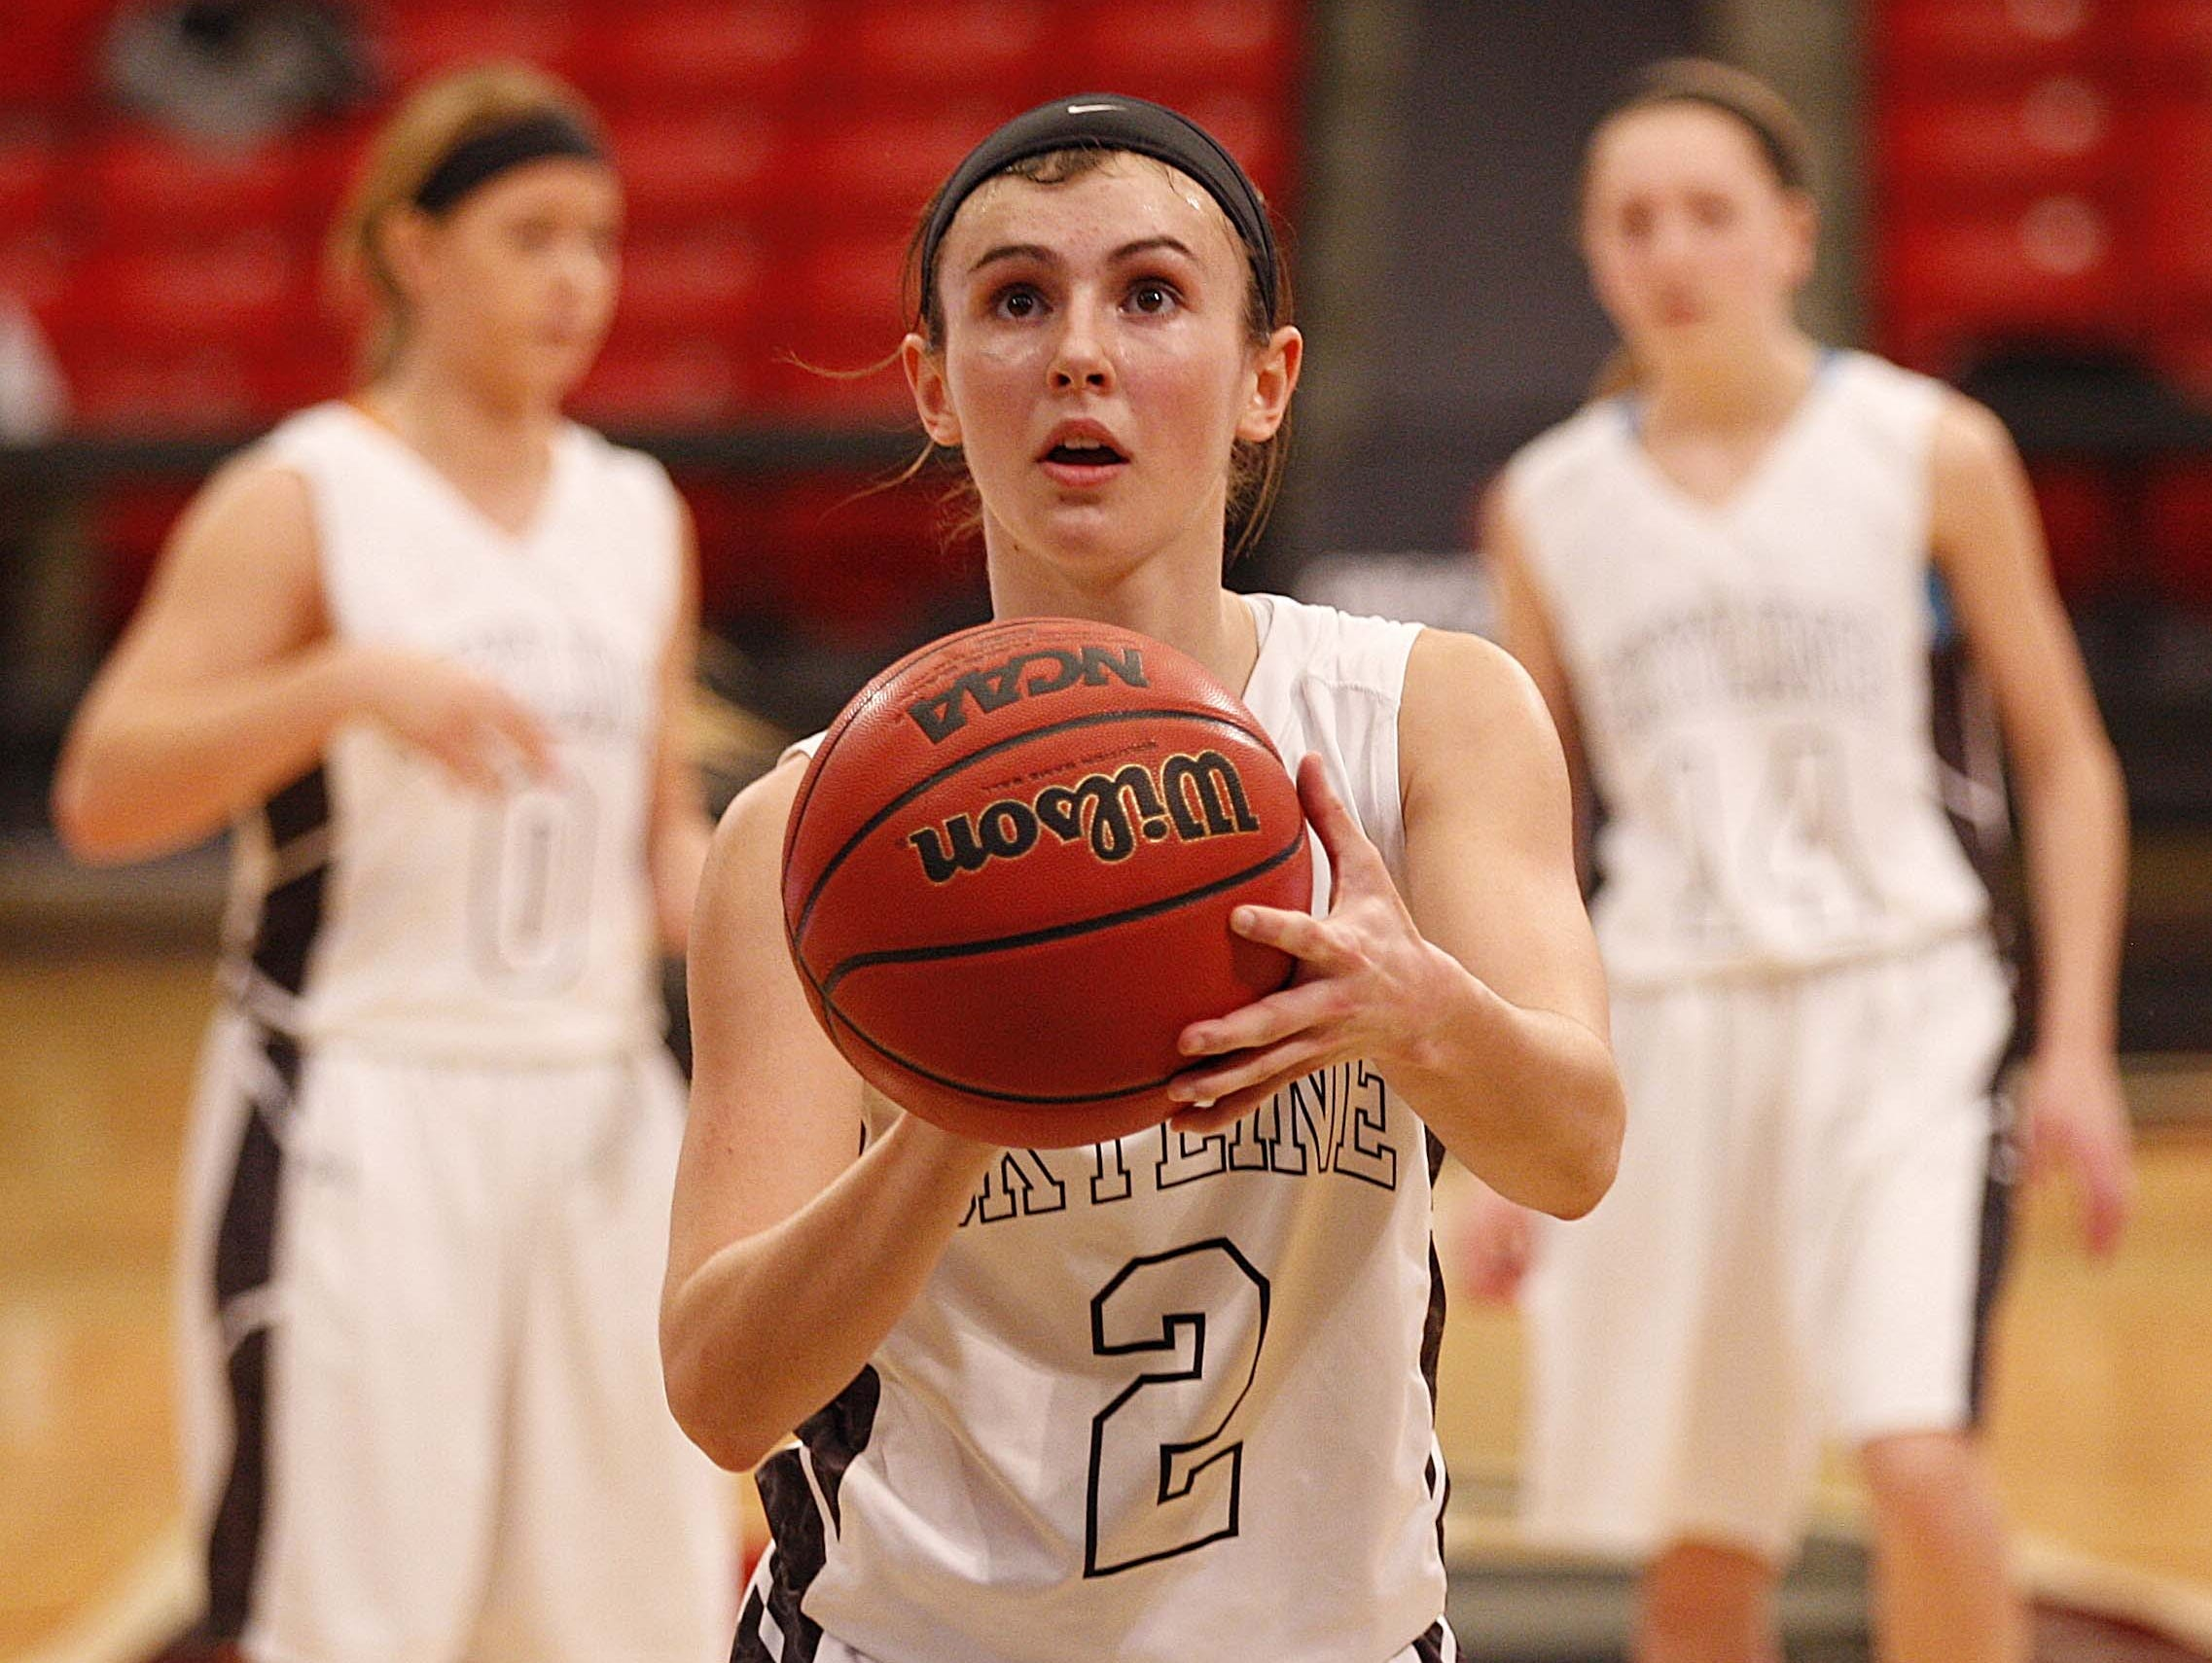 Kaylee DaMitz, center, and the Skyline Tigers won the state title with their smothering defense.